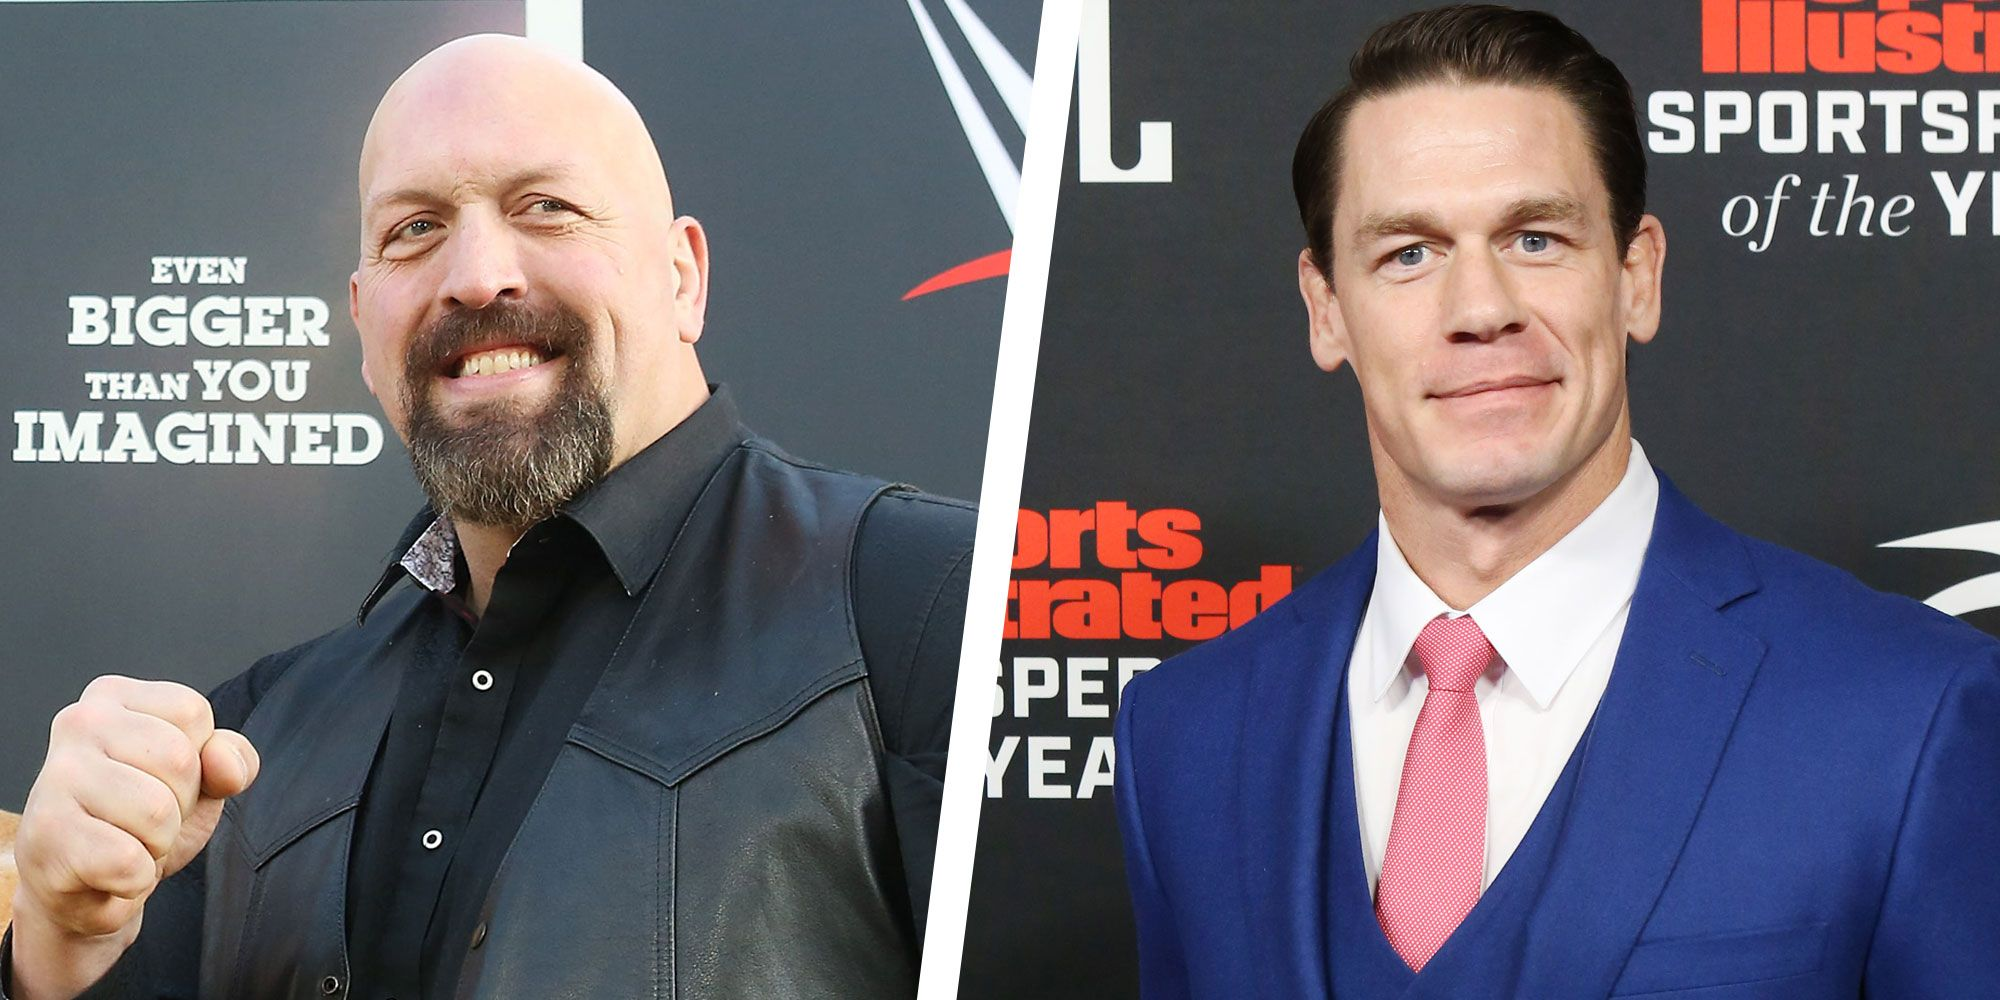 WWE Star Big Show Says John Cena Inspired Him to Become the 'Giant with Abs'